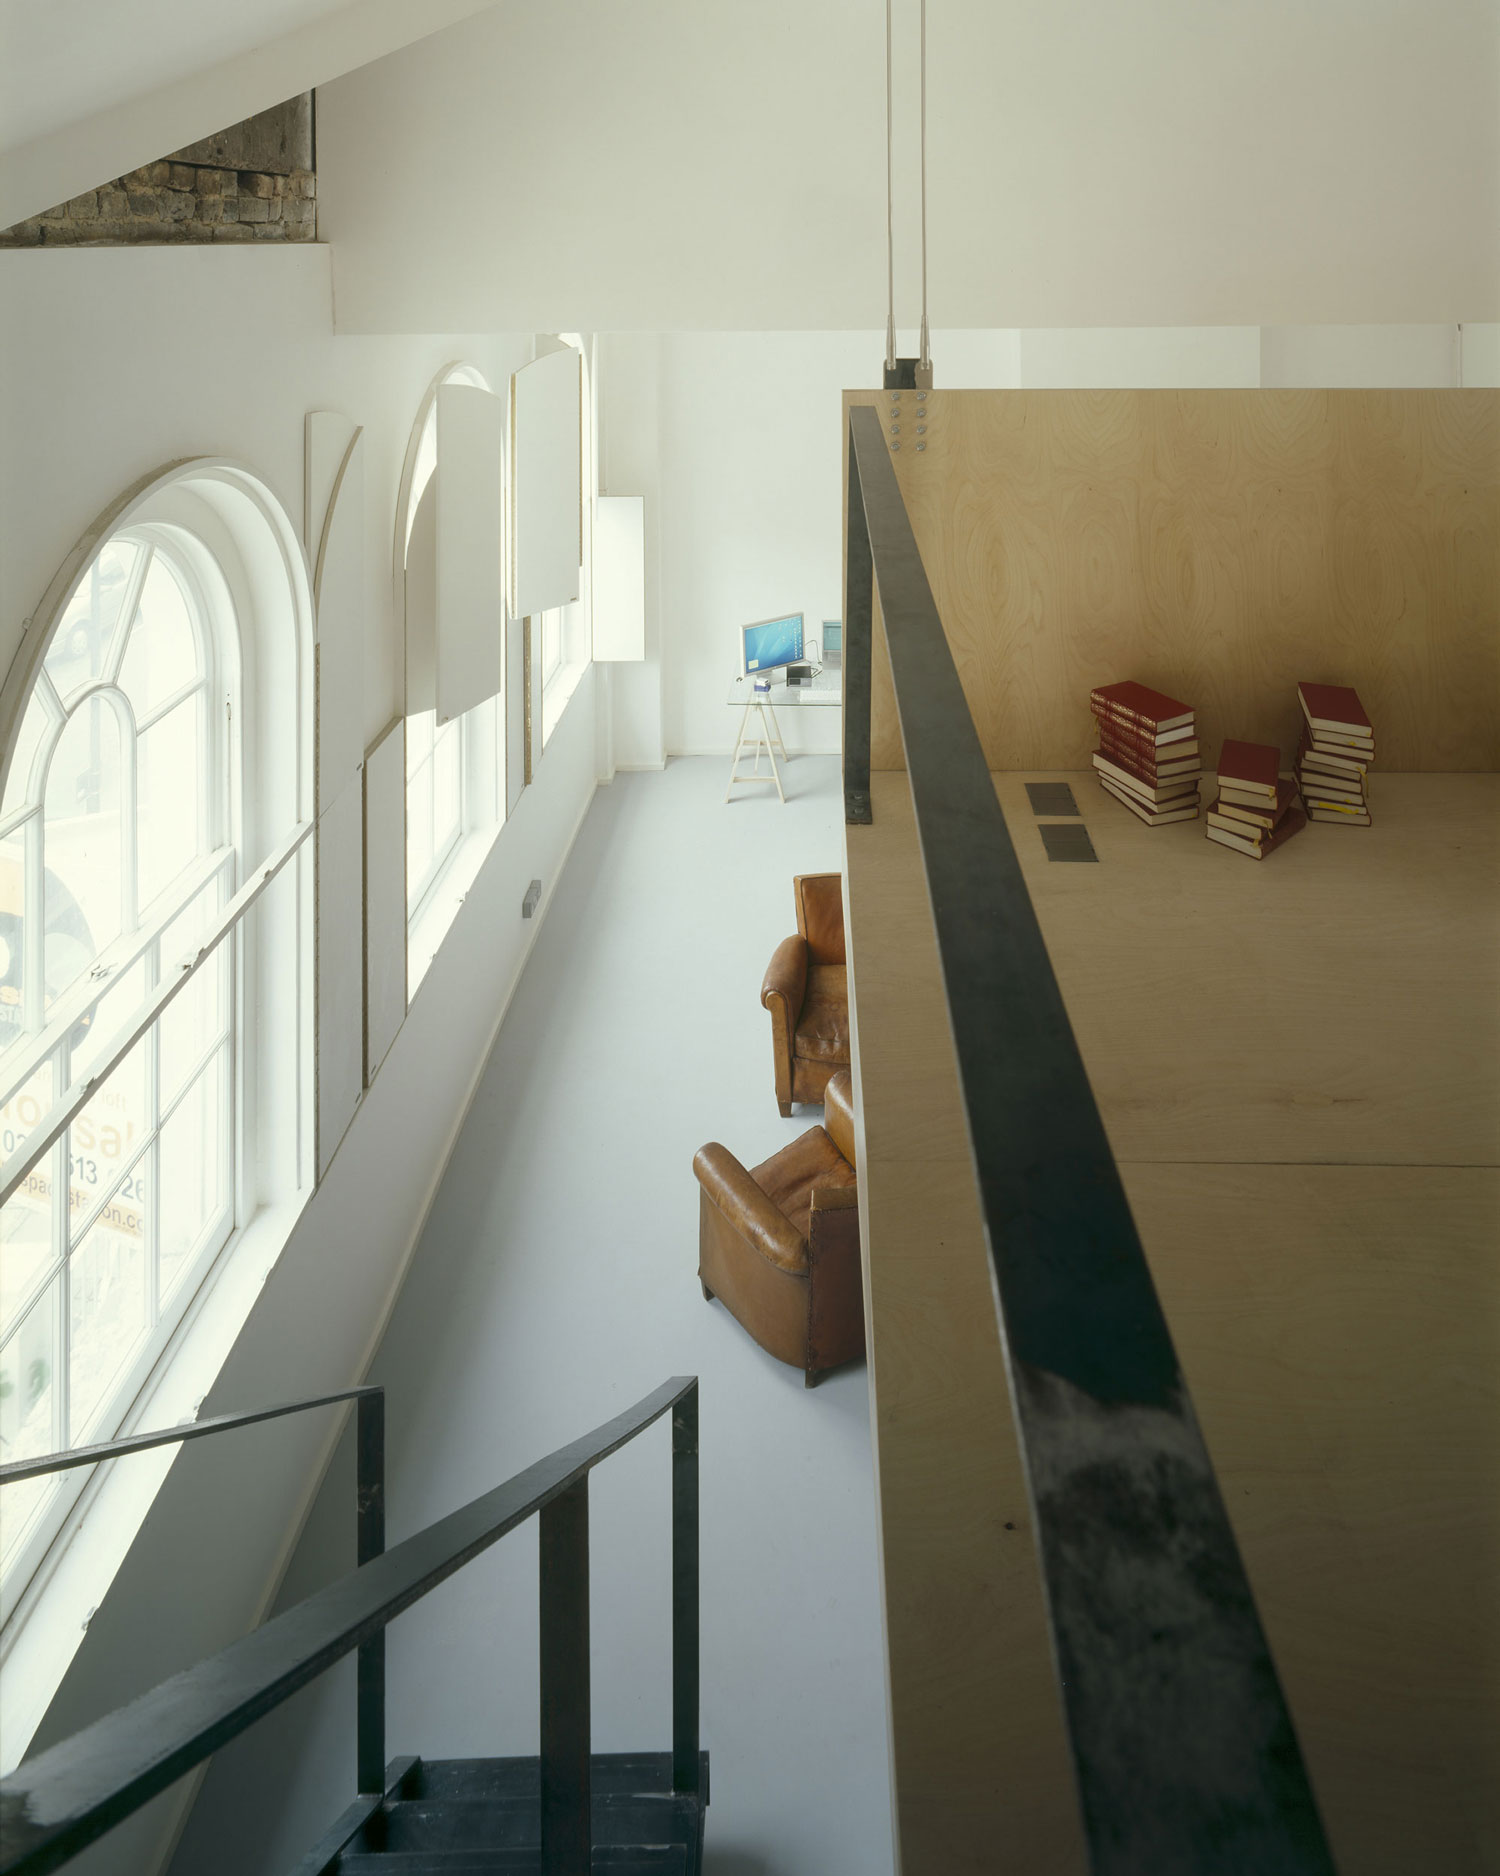 Bavaria Road Studio by West Architecture | Yellowtrace